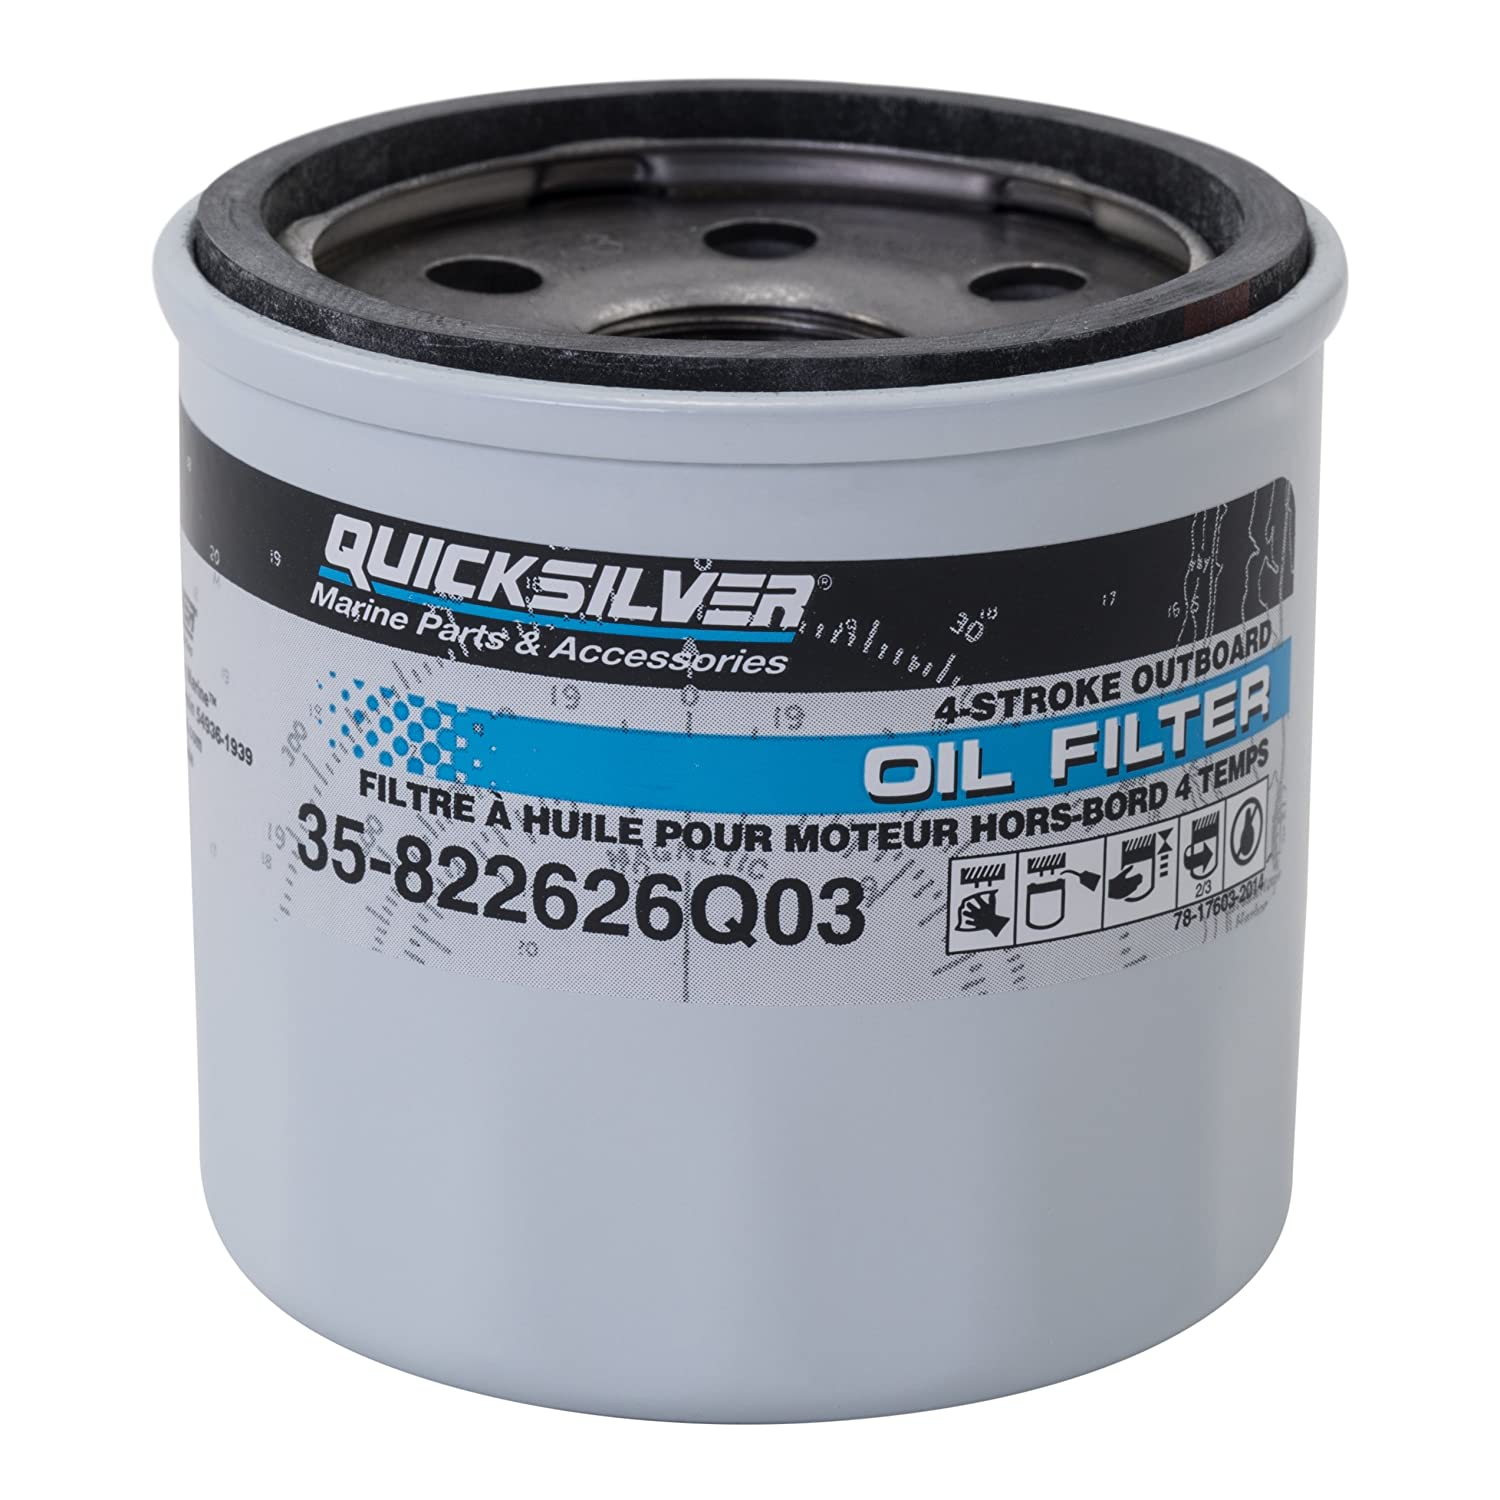 Quicksilver 822626Q03 Oil Filter - Mercury and Mariner Outboards